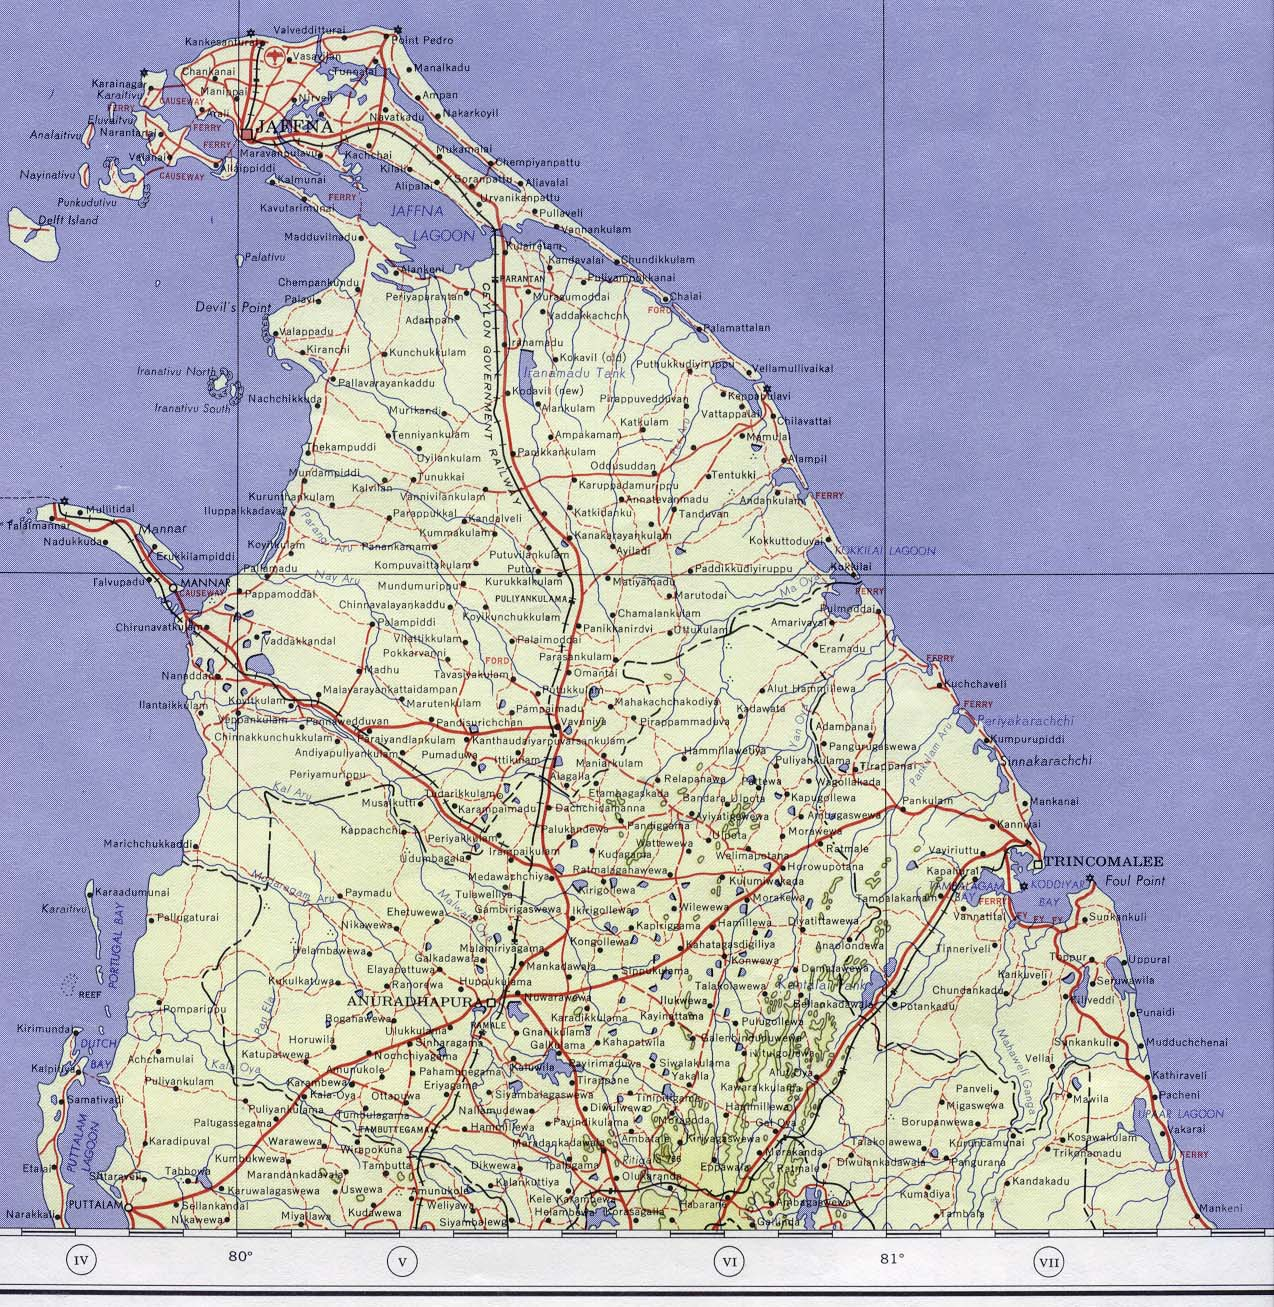 Download Free Sri Lanka Maps - Us gps maps free download